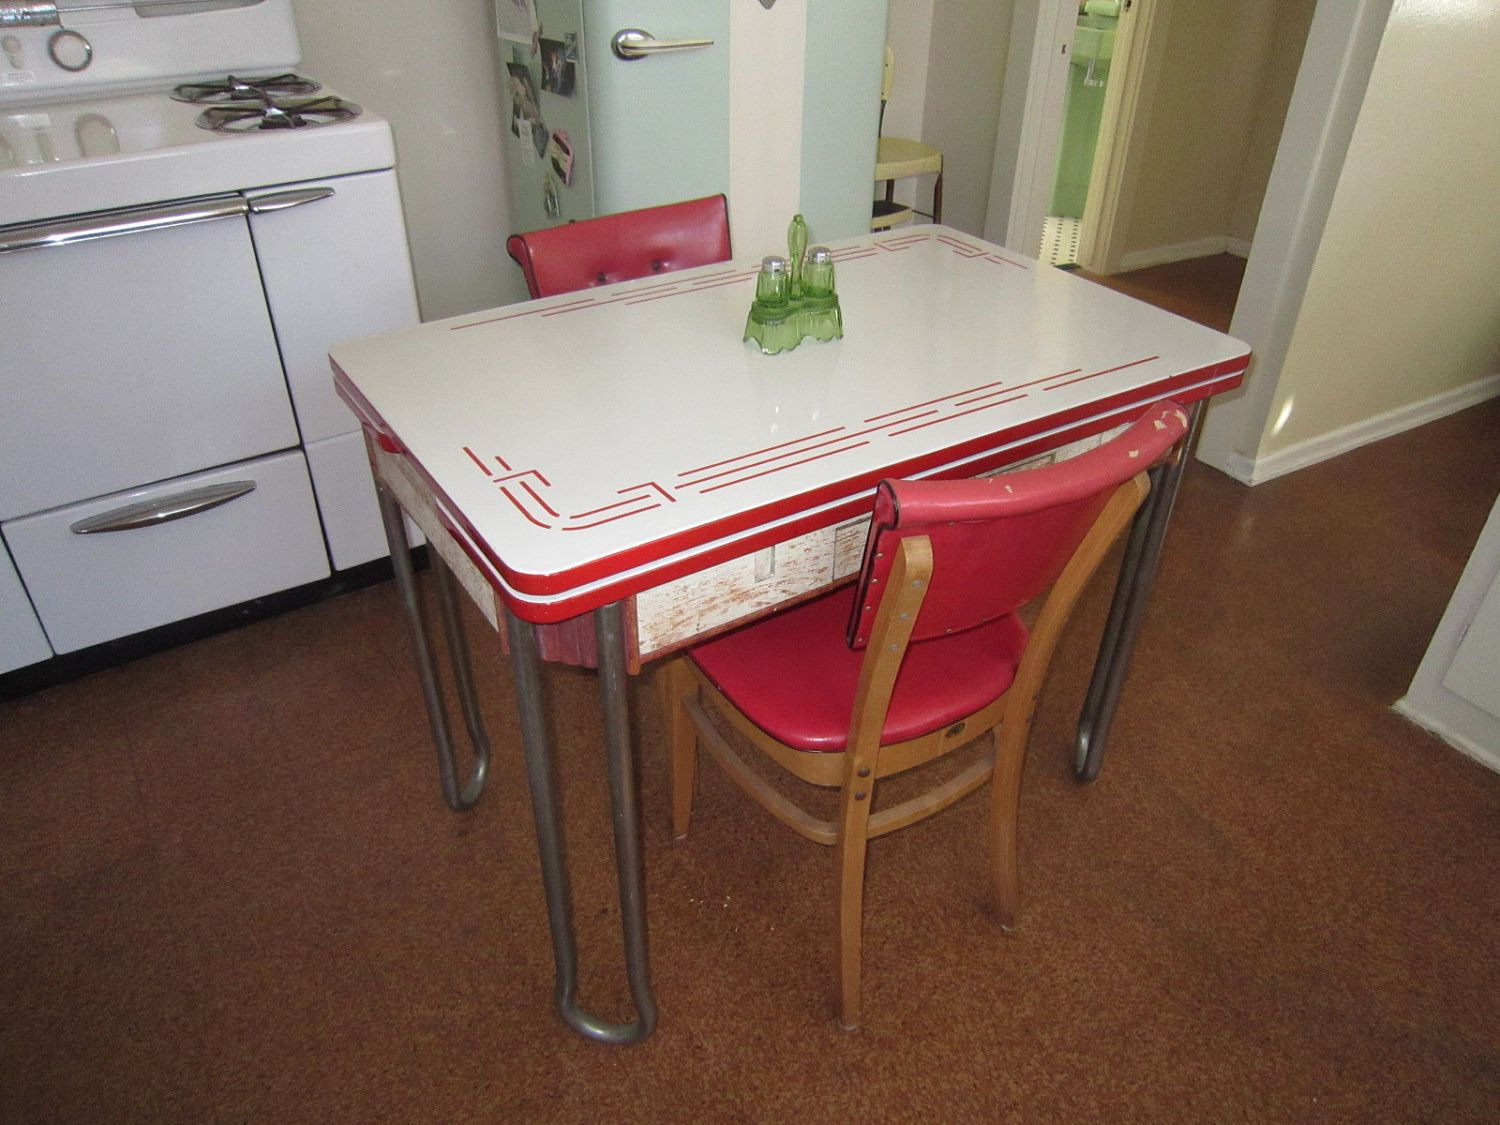 Antique kitchen table and chairs - Find This Pin And More On Vintage Enamel Kitchen Tables